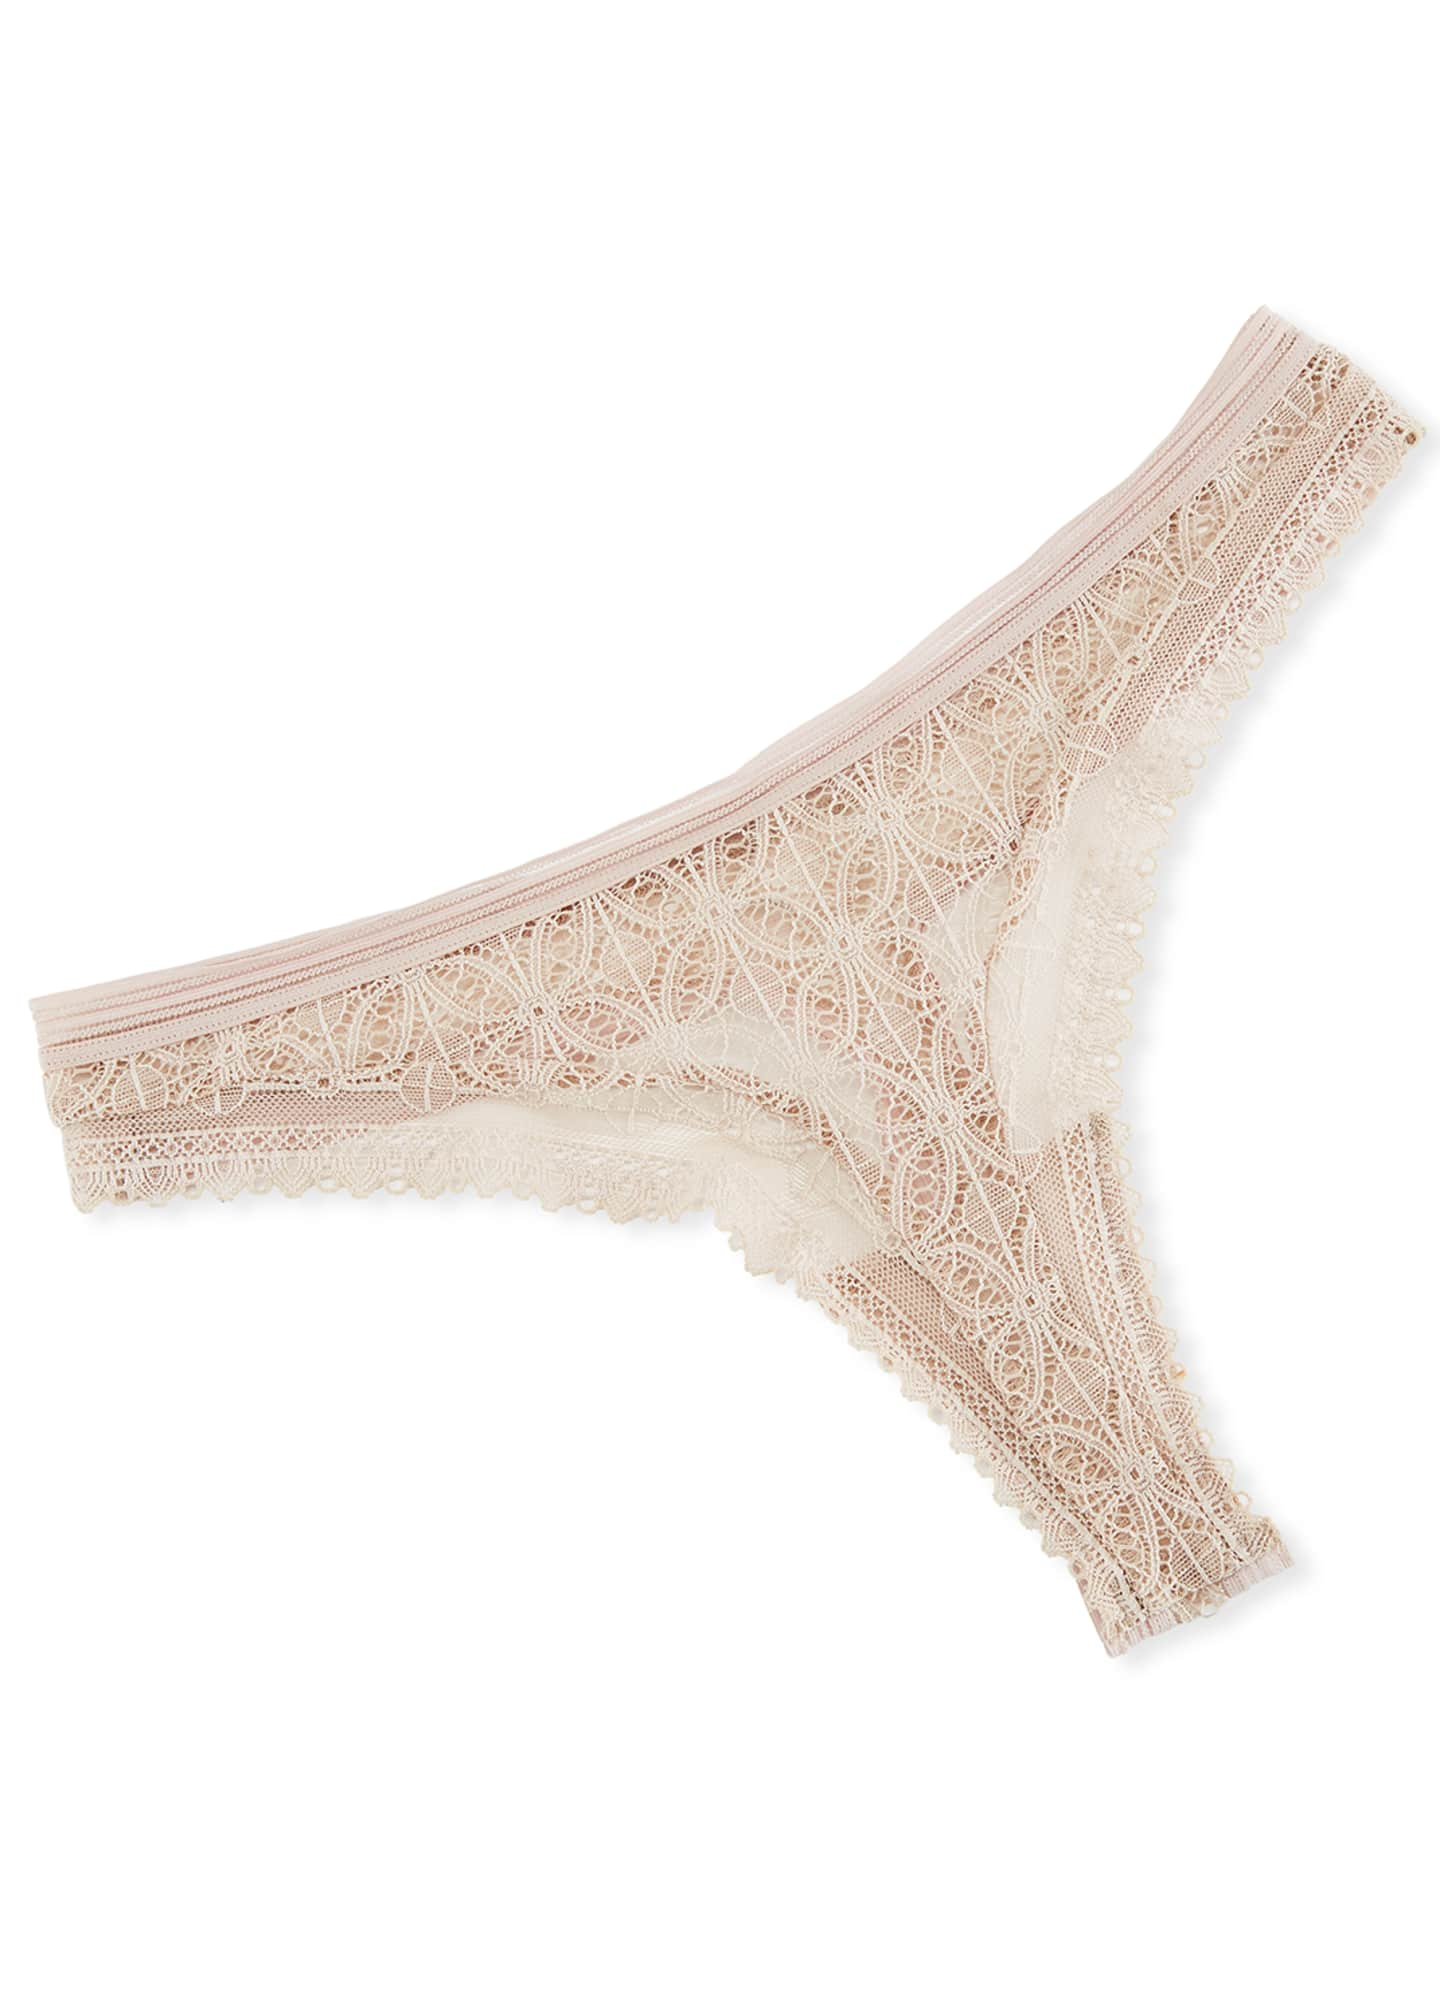 Image 1 of 2: Chloe Lace Thong Underwear